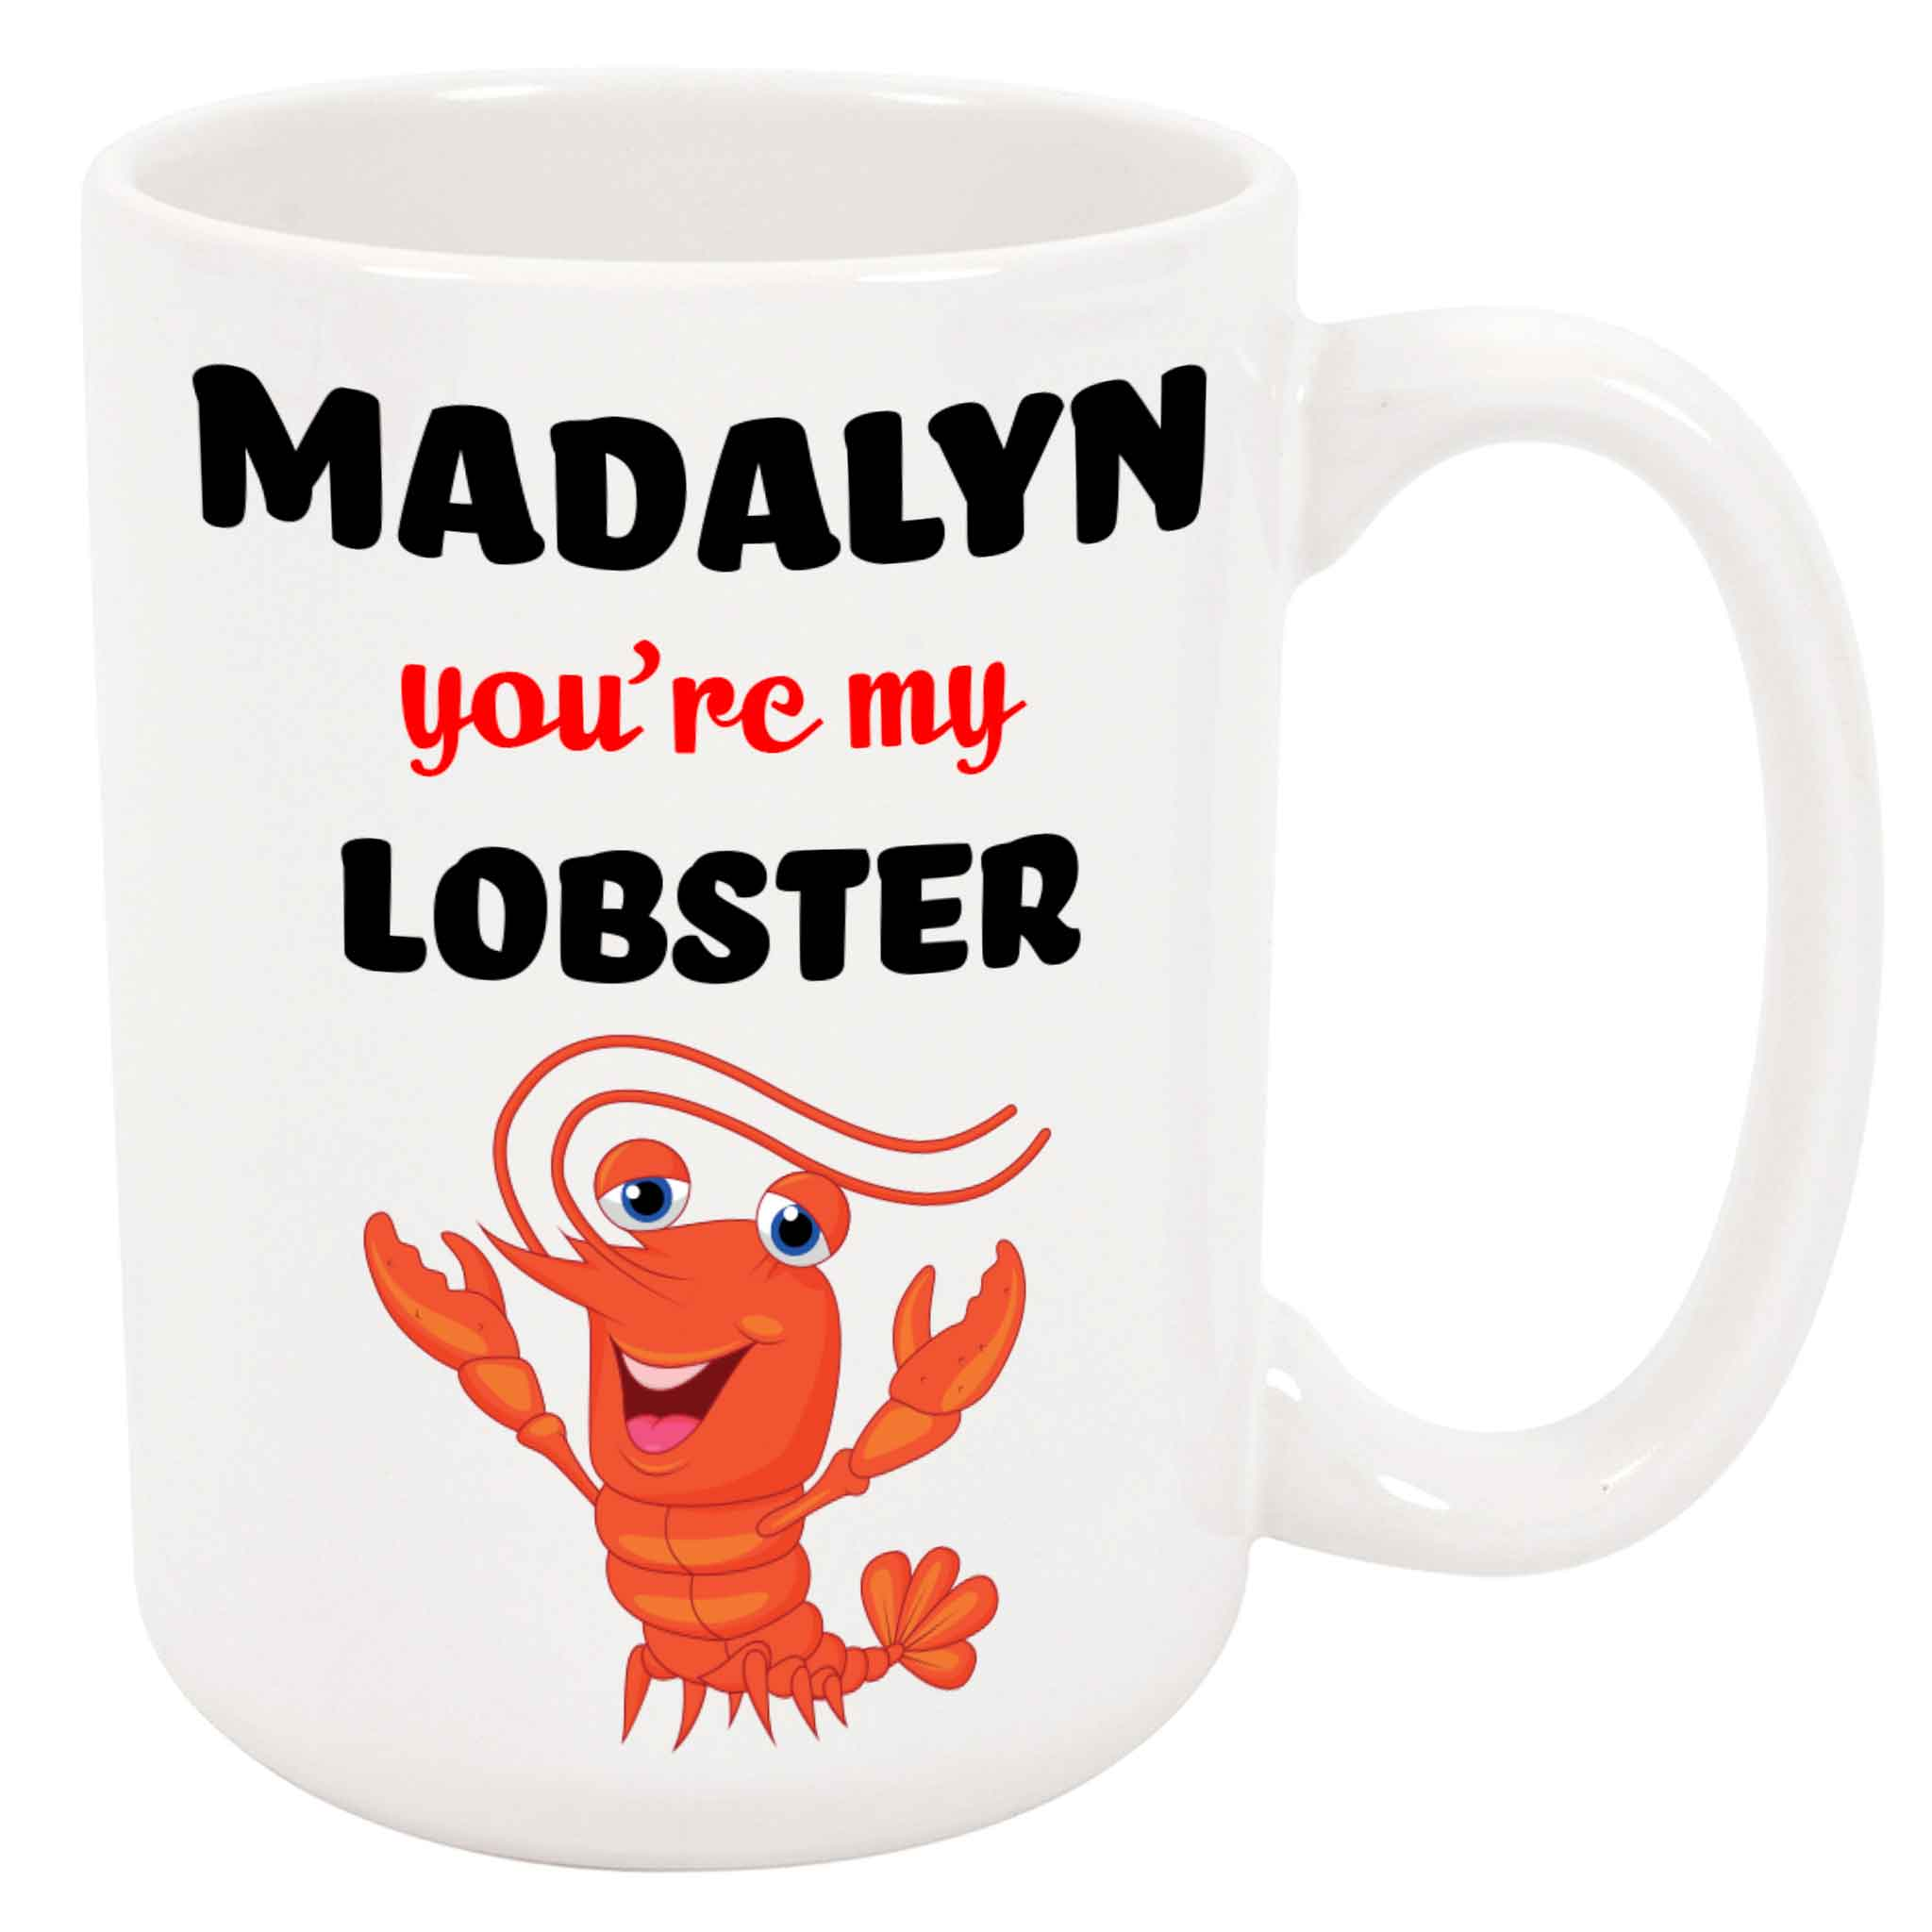 Madalyn - You're My Lobster - White Mug (15 Ounce)